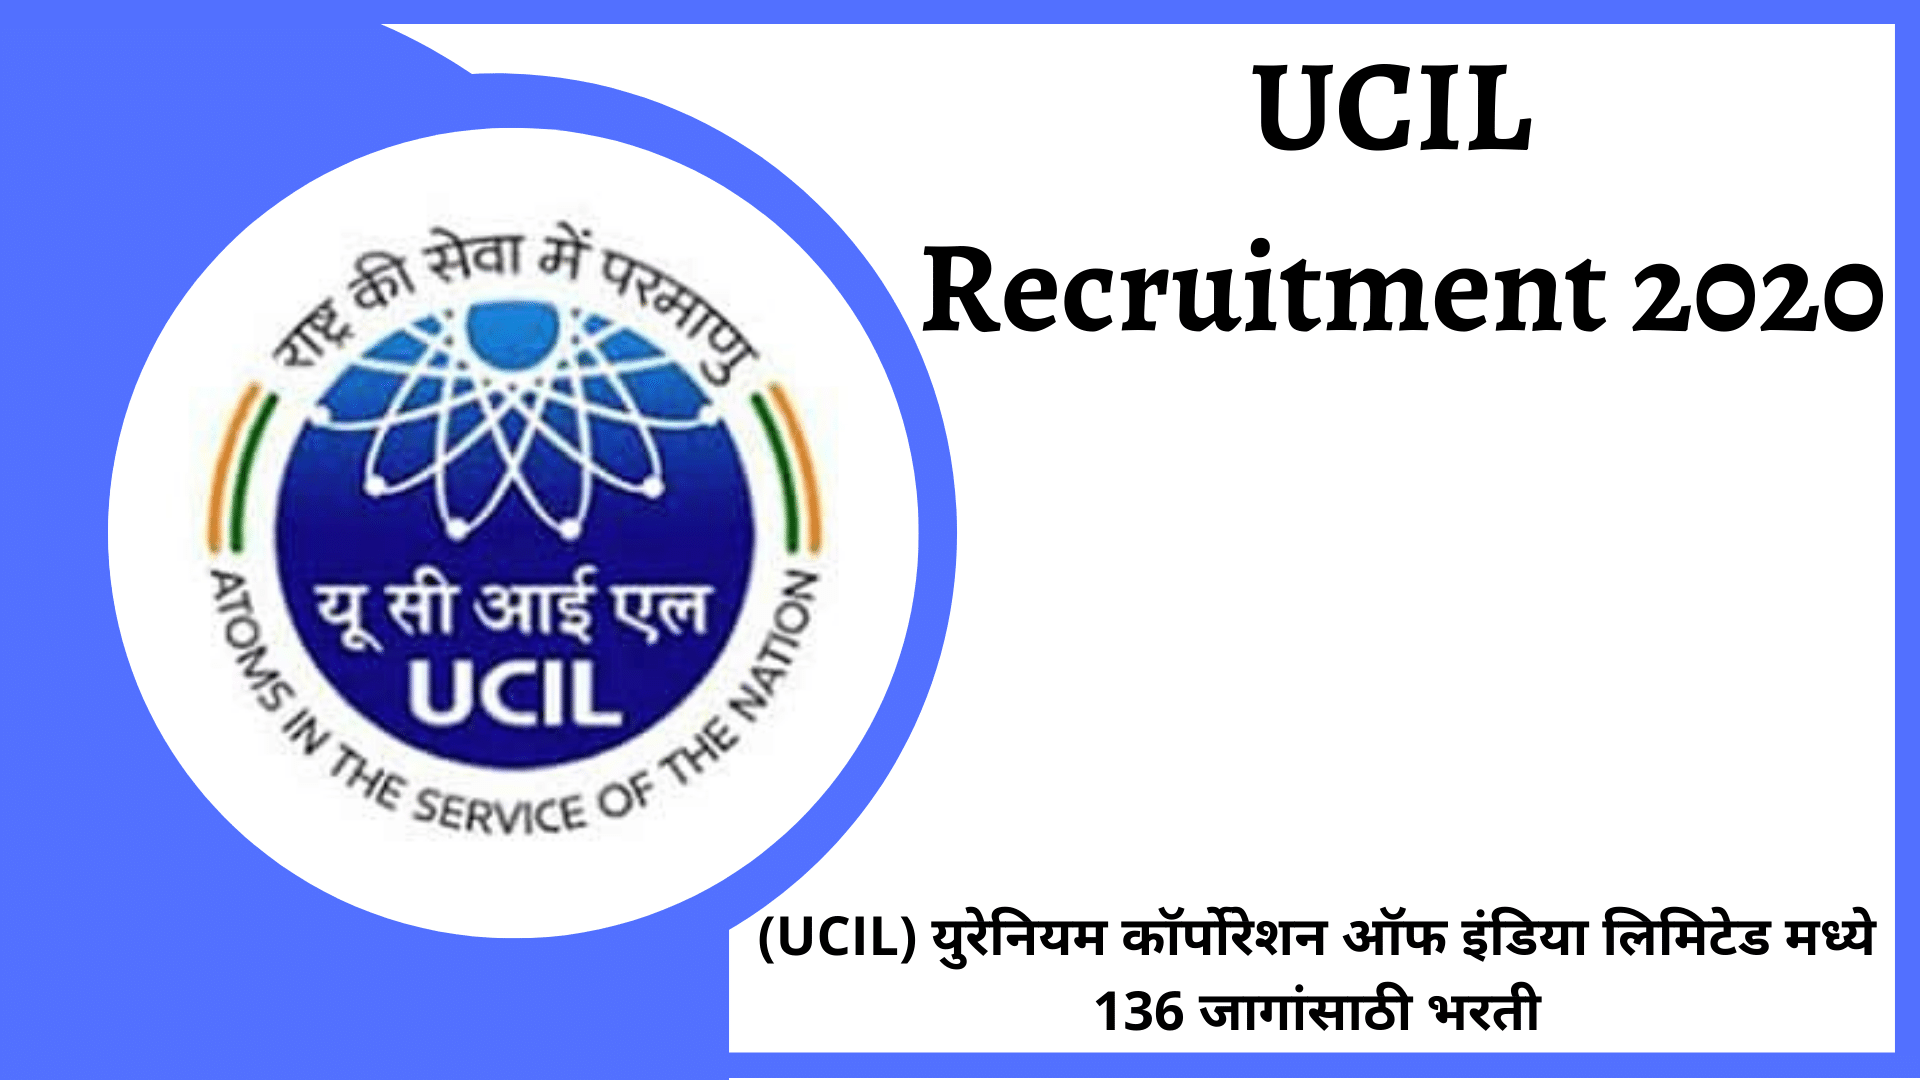 UCIL Recruitment 2020 | Uranium Corporation of India Limited Recruitment 2020